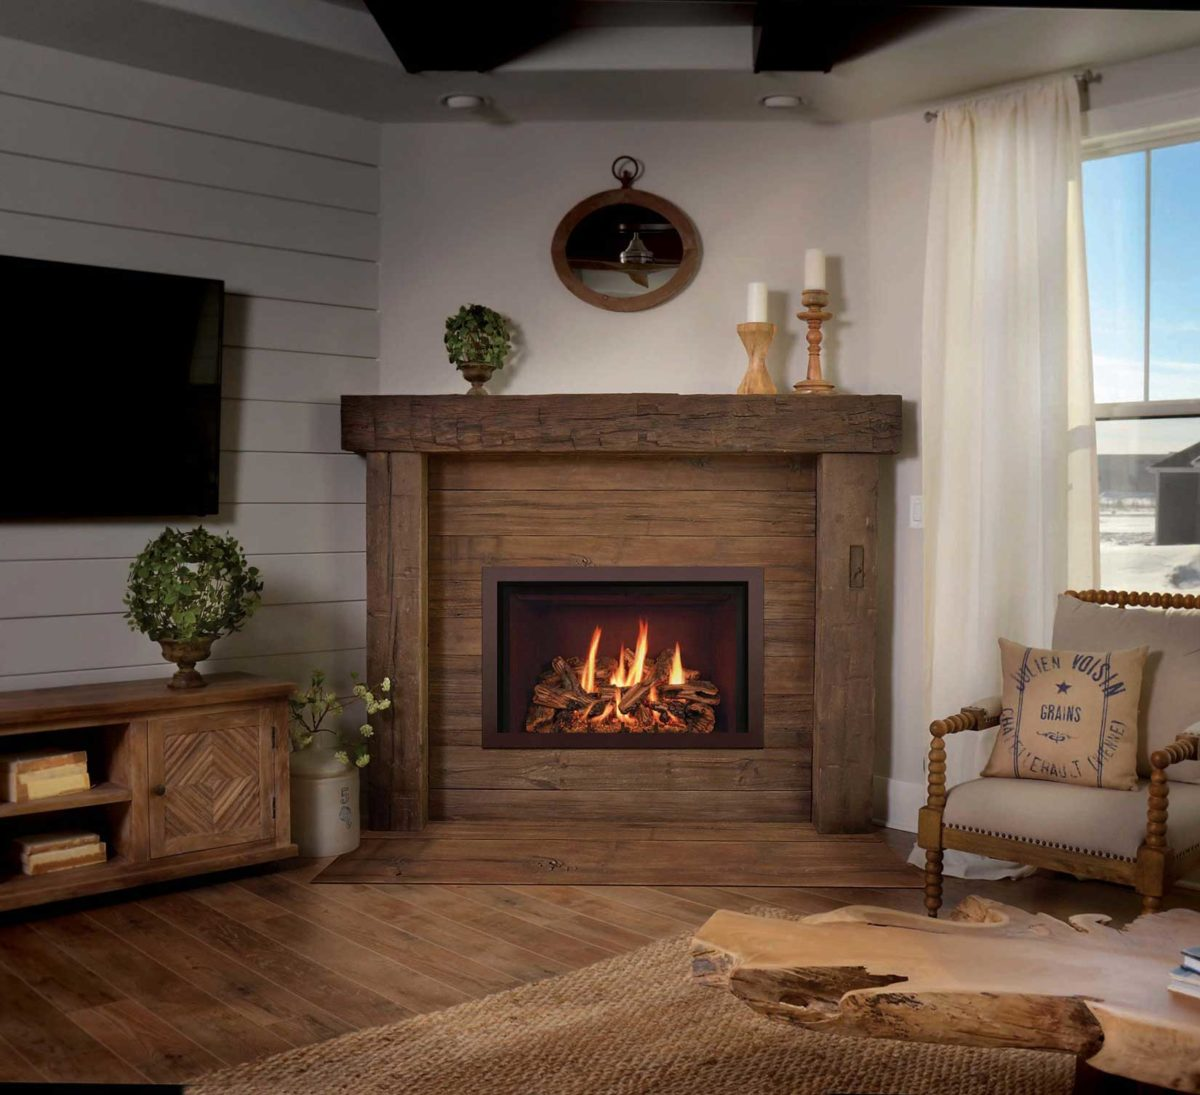 How To Operate A Fireplace Fireplaces Colony Heating And Air Conditioning